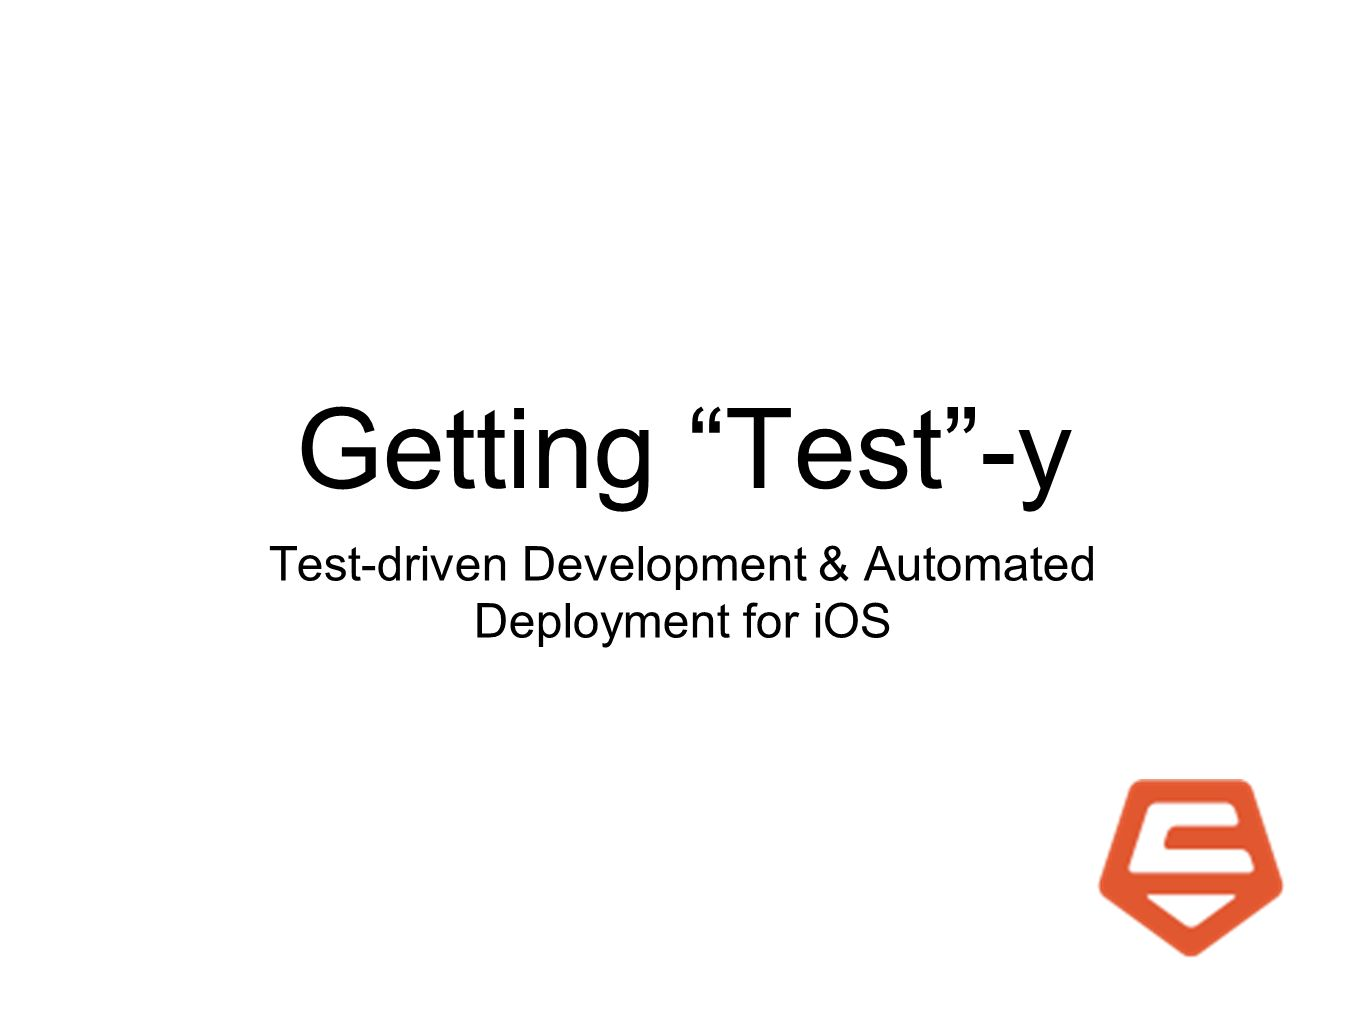 Getting Test-y Test-driven Development & Automated Deployment for iOS